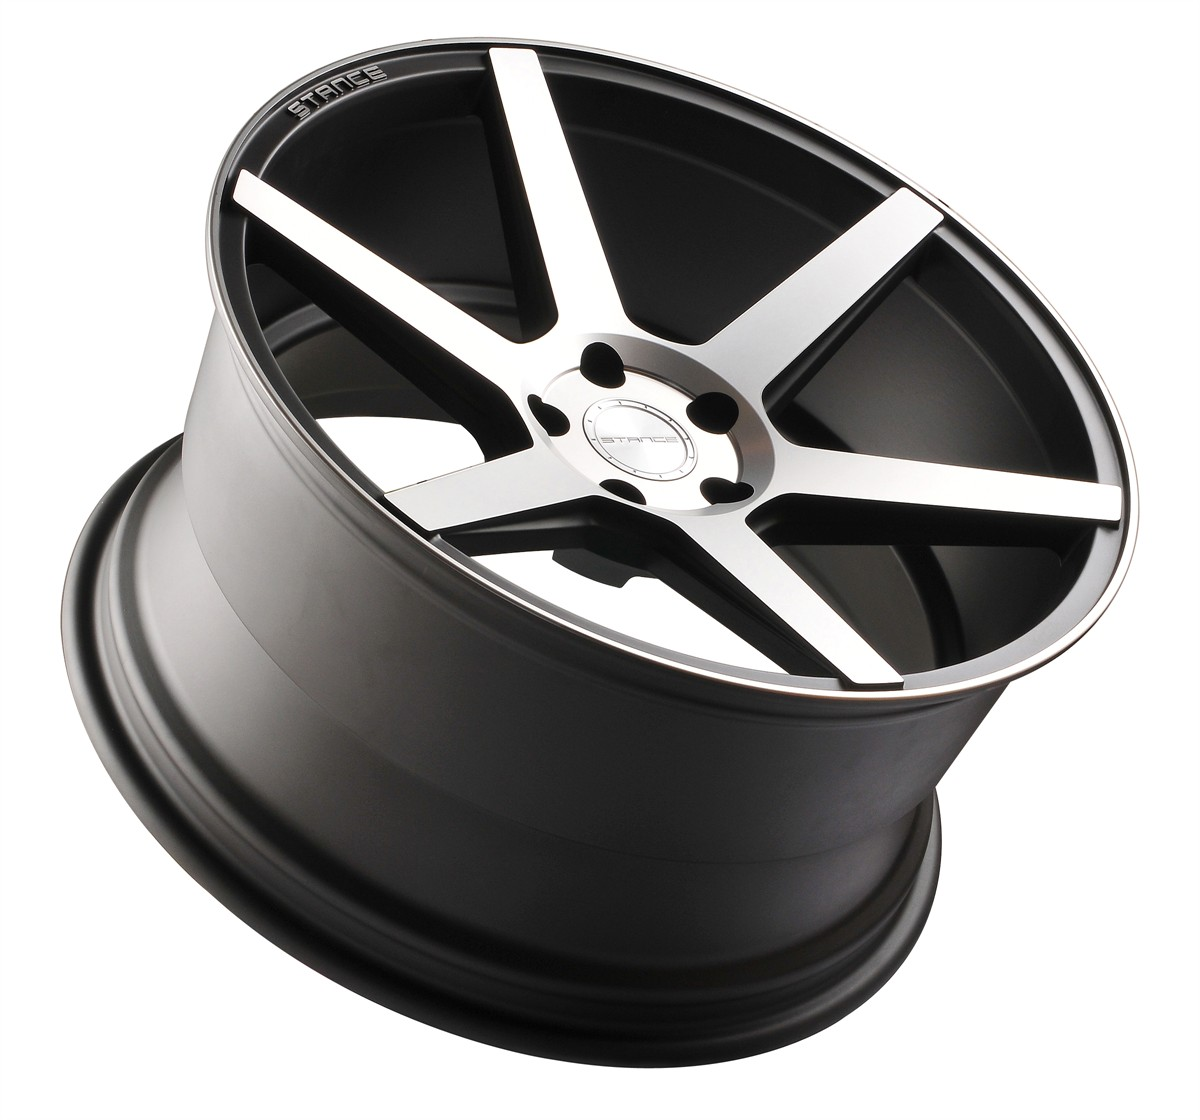 The concave styles that started it all. The Concave Series wheels are the pioneers of concave monoblock style that stand the test of time with its timeless design.